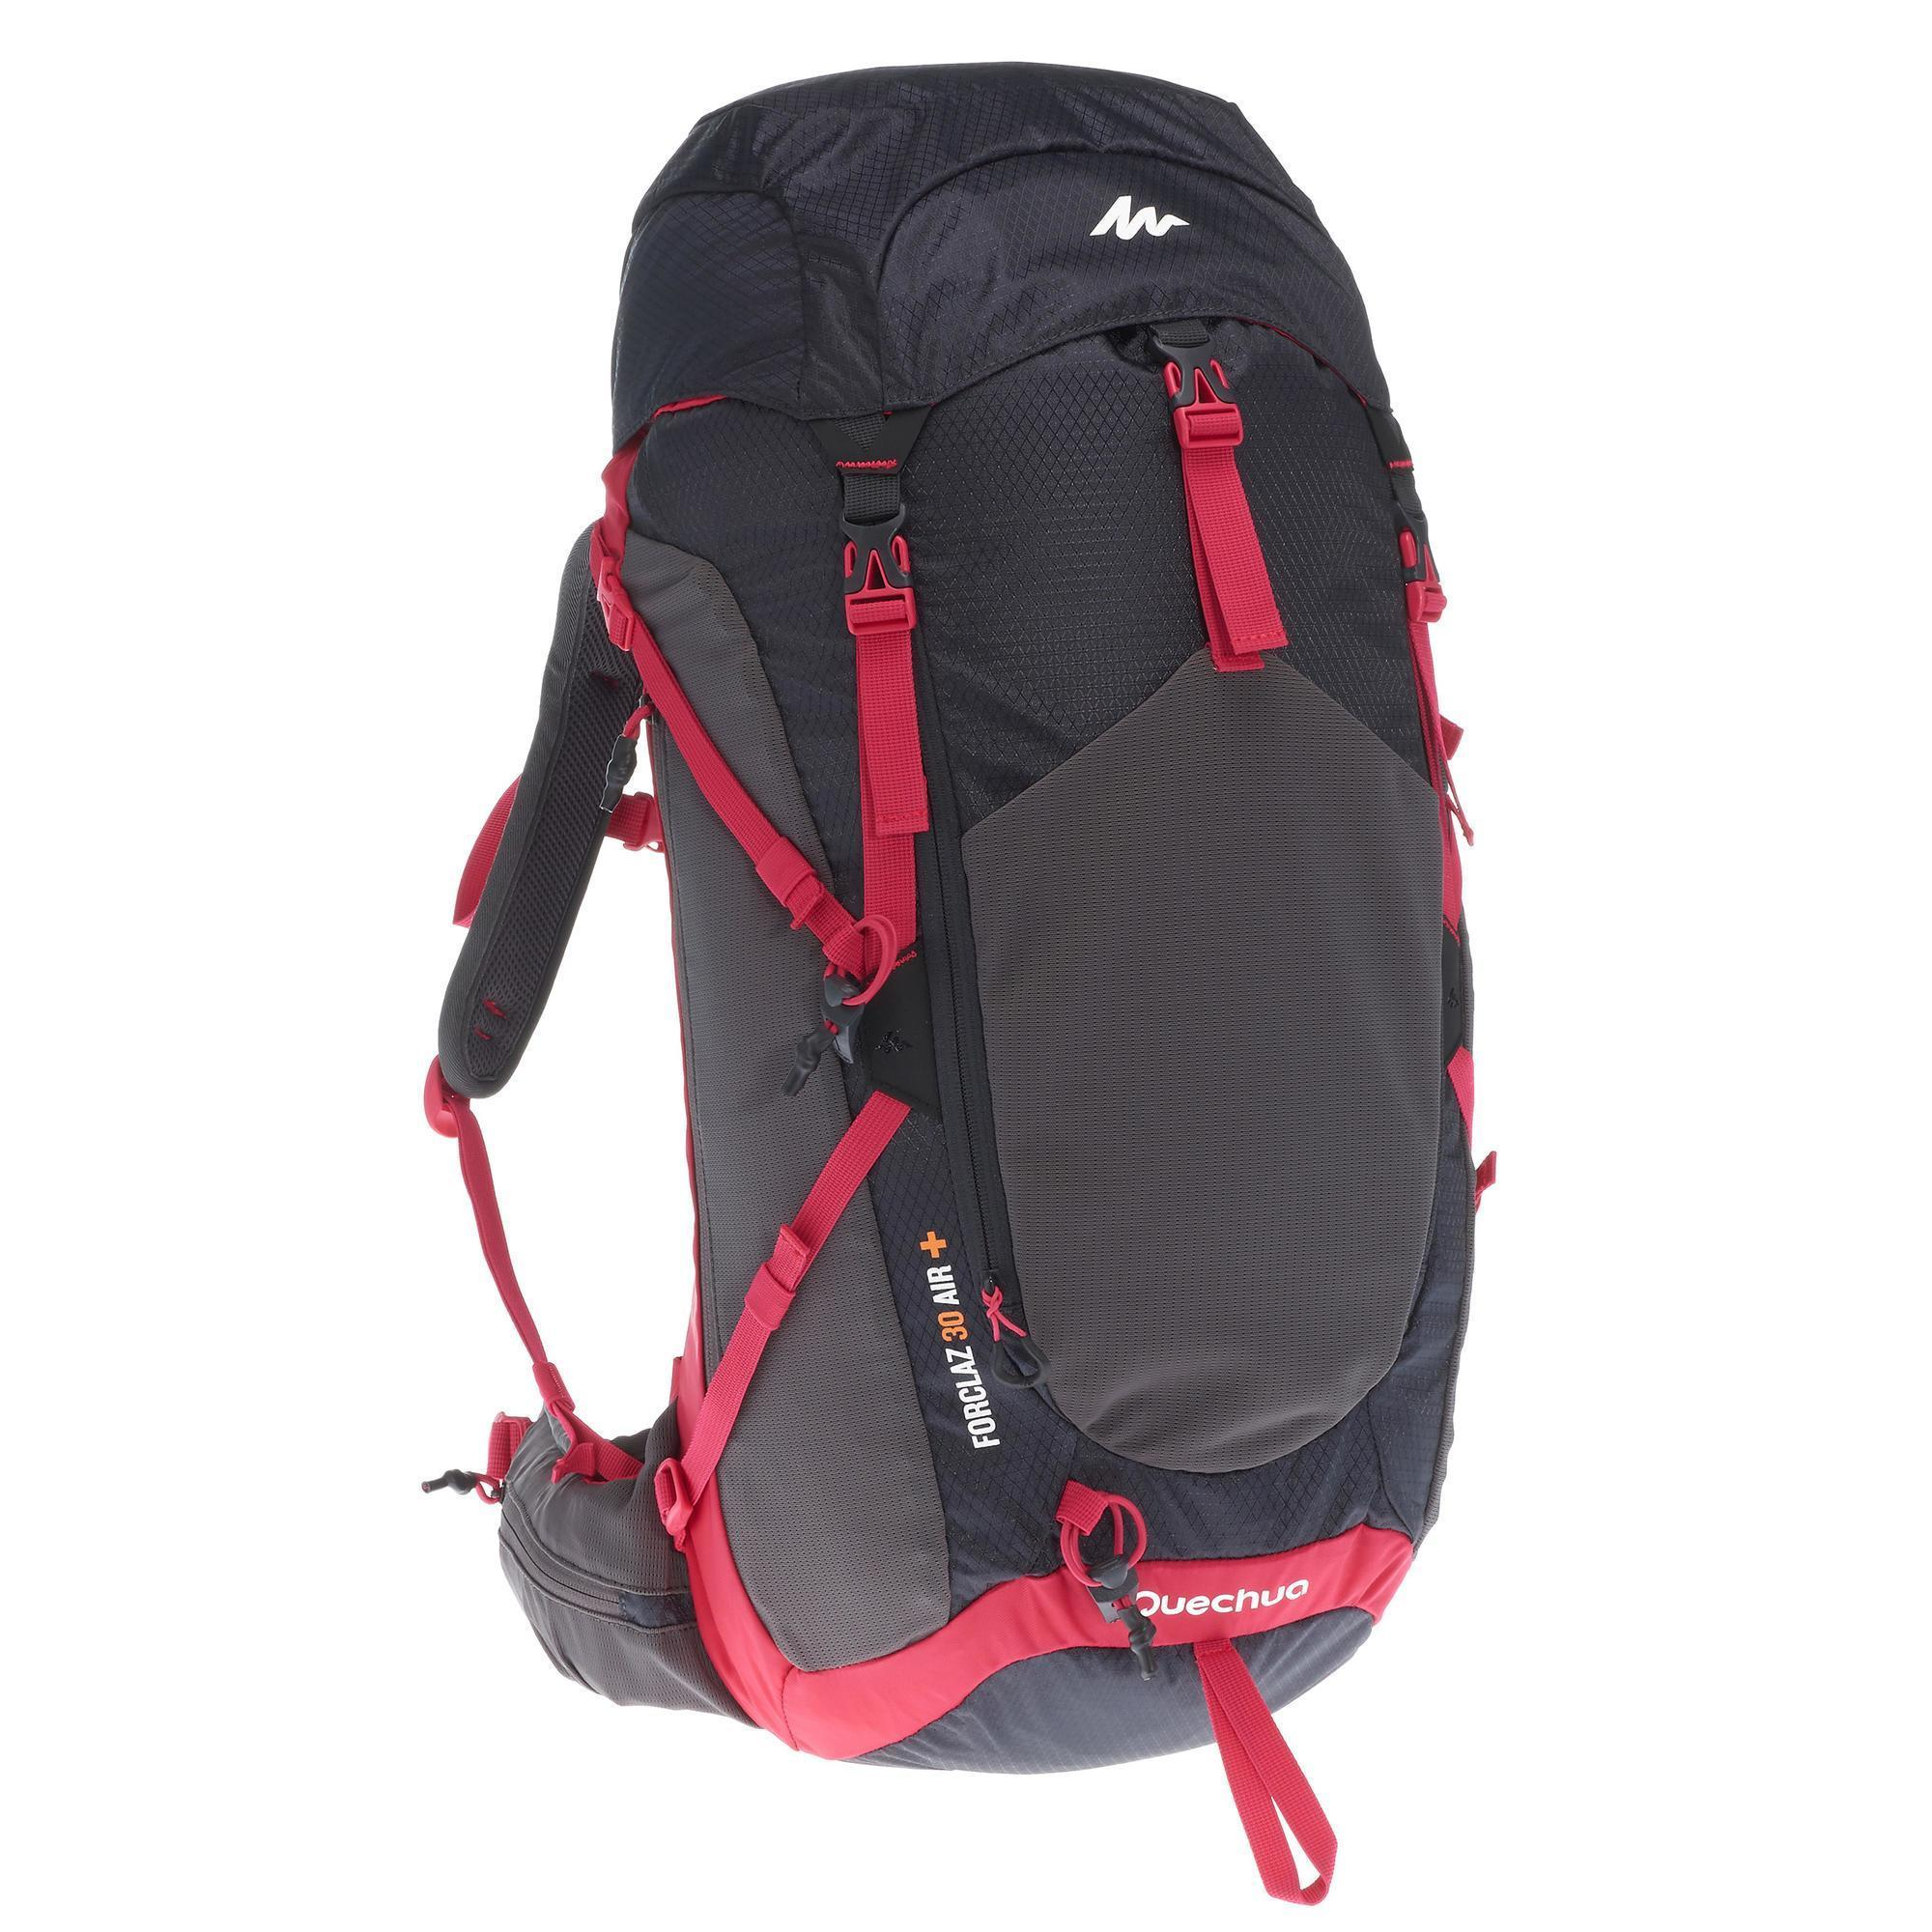 MH500 WOMEN'S HIKING BACKPACK - BLACK/PINK   Quechua